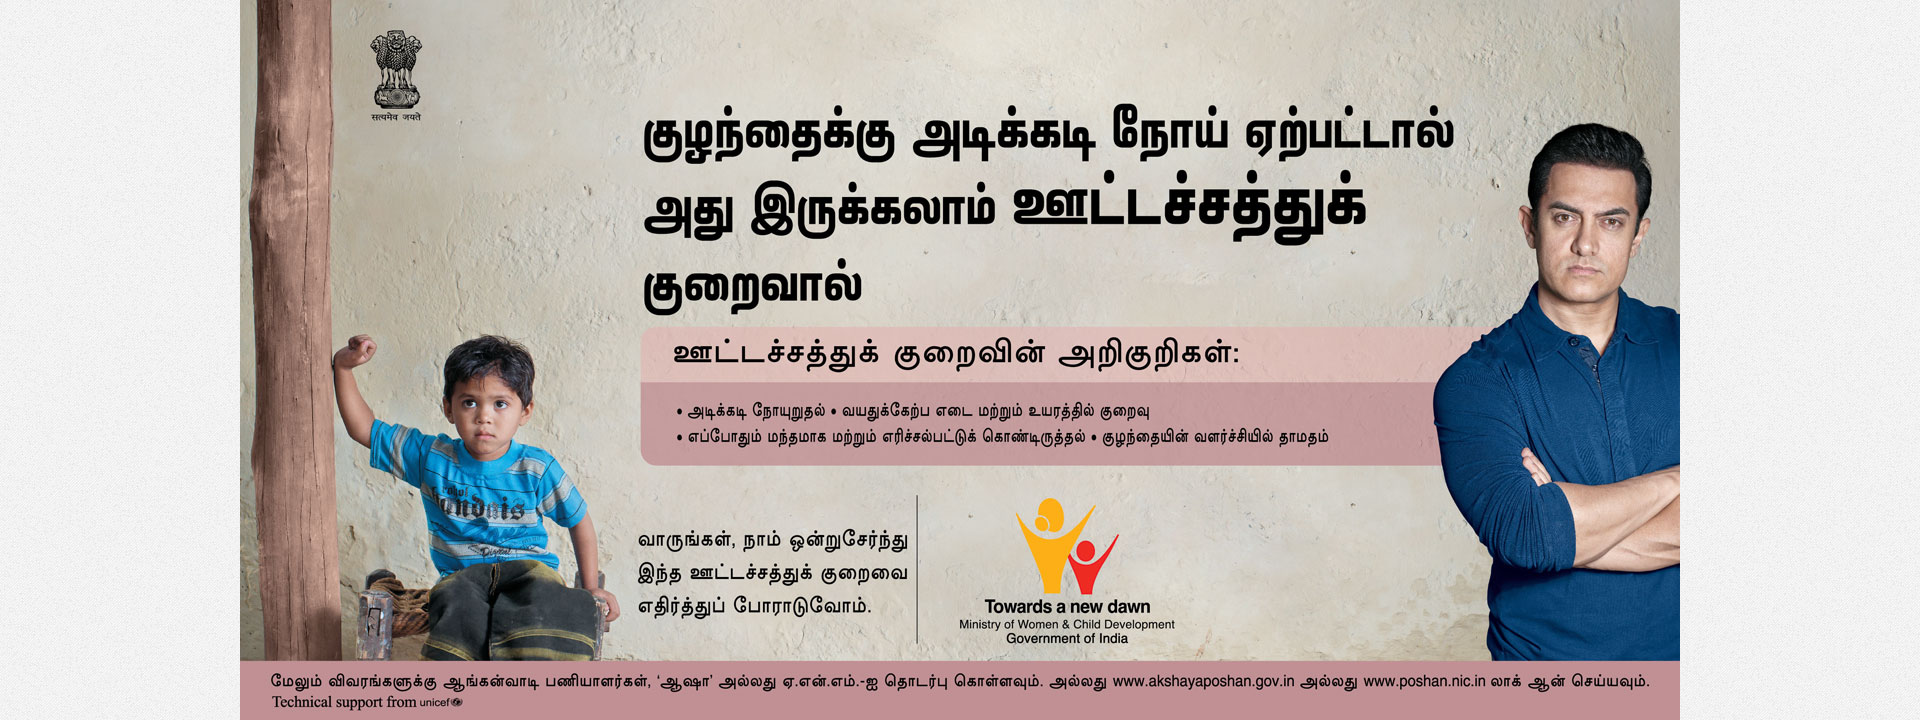 Tamil - தமிழ் - Thamizh | Poshan | Nutrition, Food, Poverty